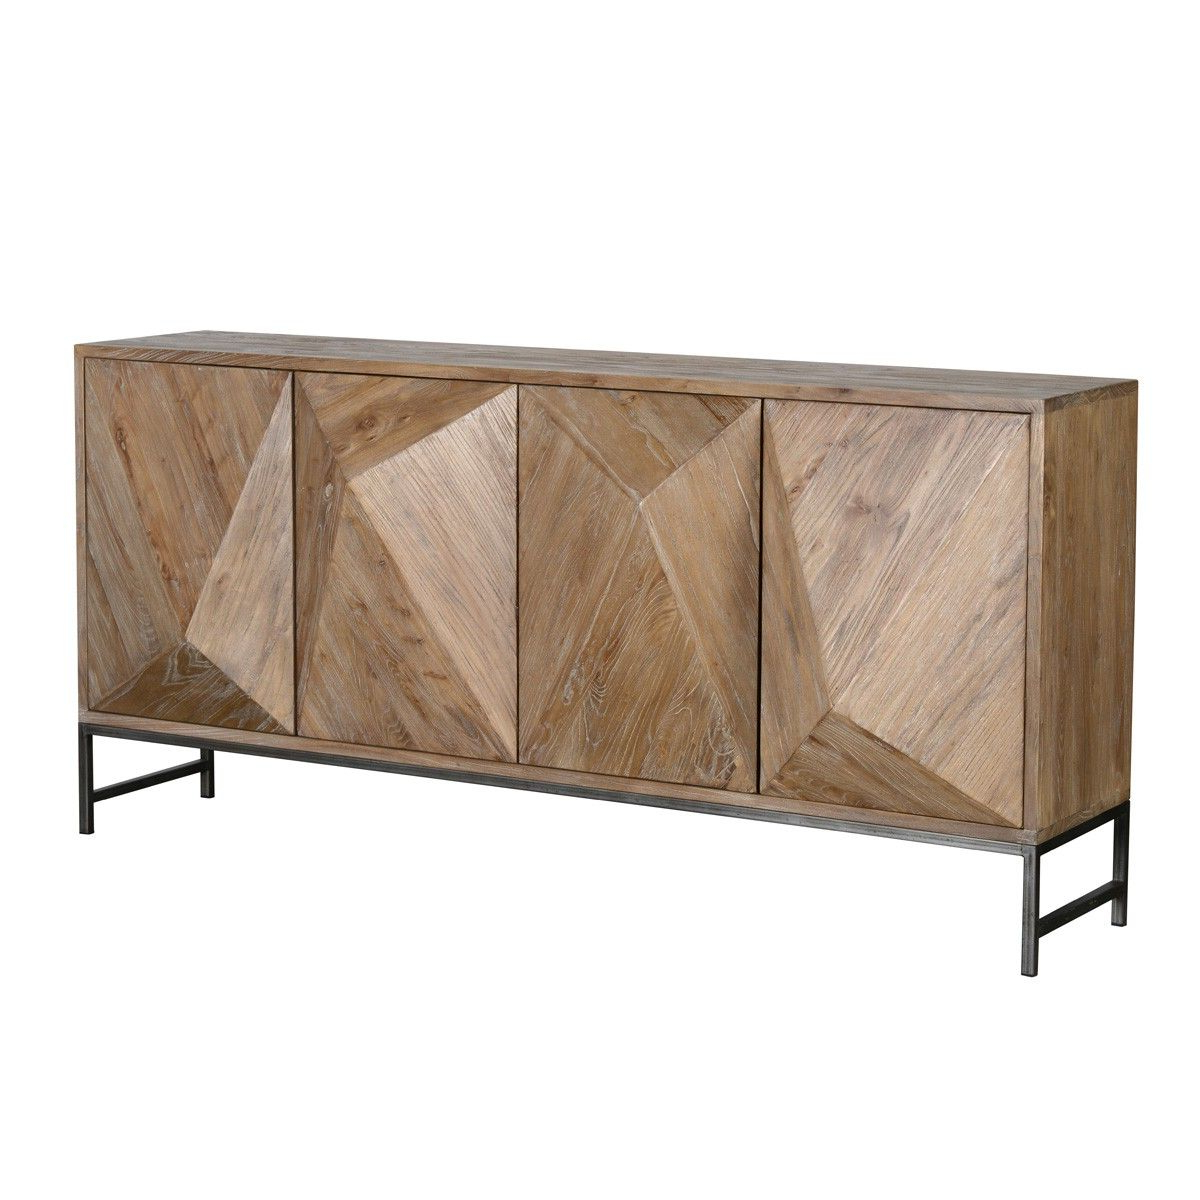 Latest Maddock 4Dr Sideboard – Cabinets – Furniture – Products With Regard To Rosson Sideboards (View 8 of 20)